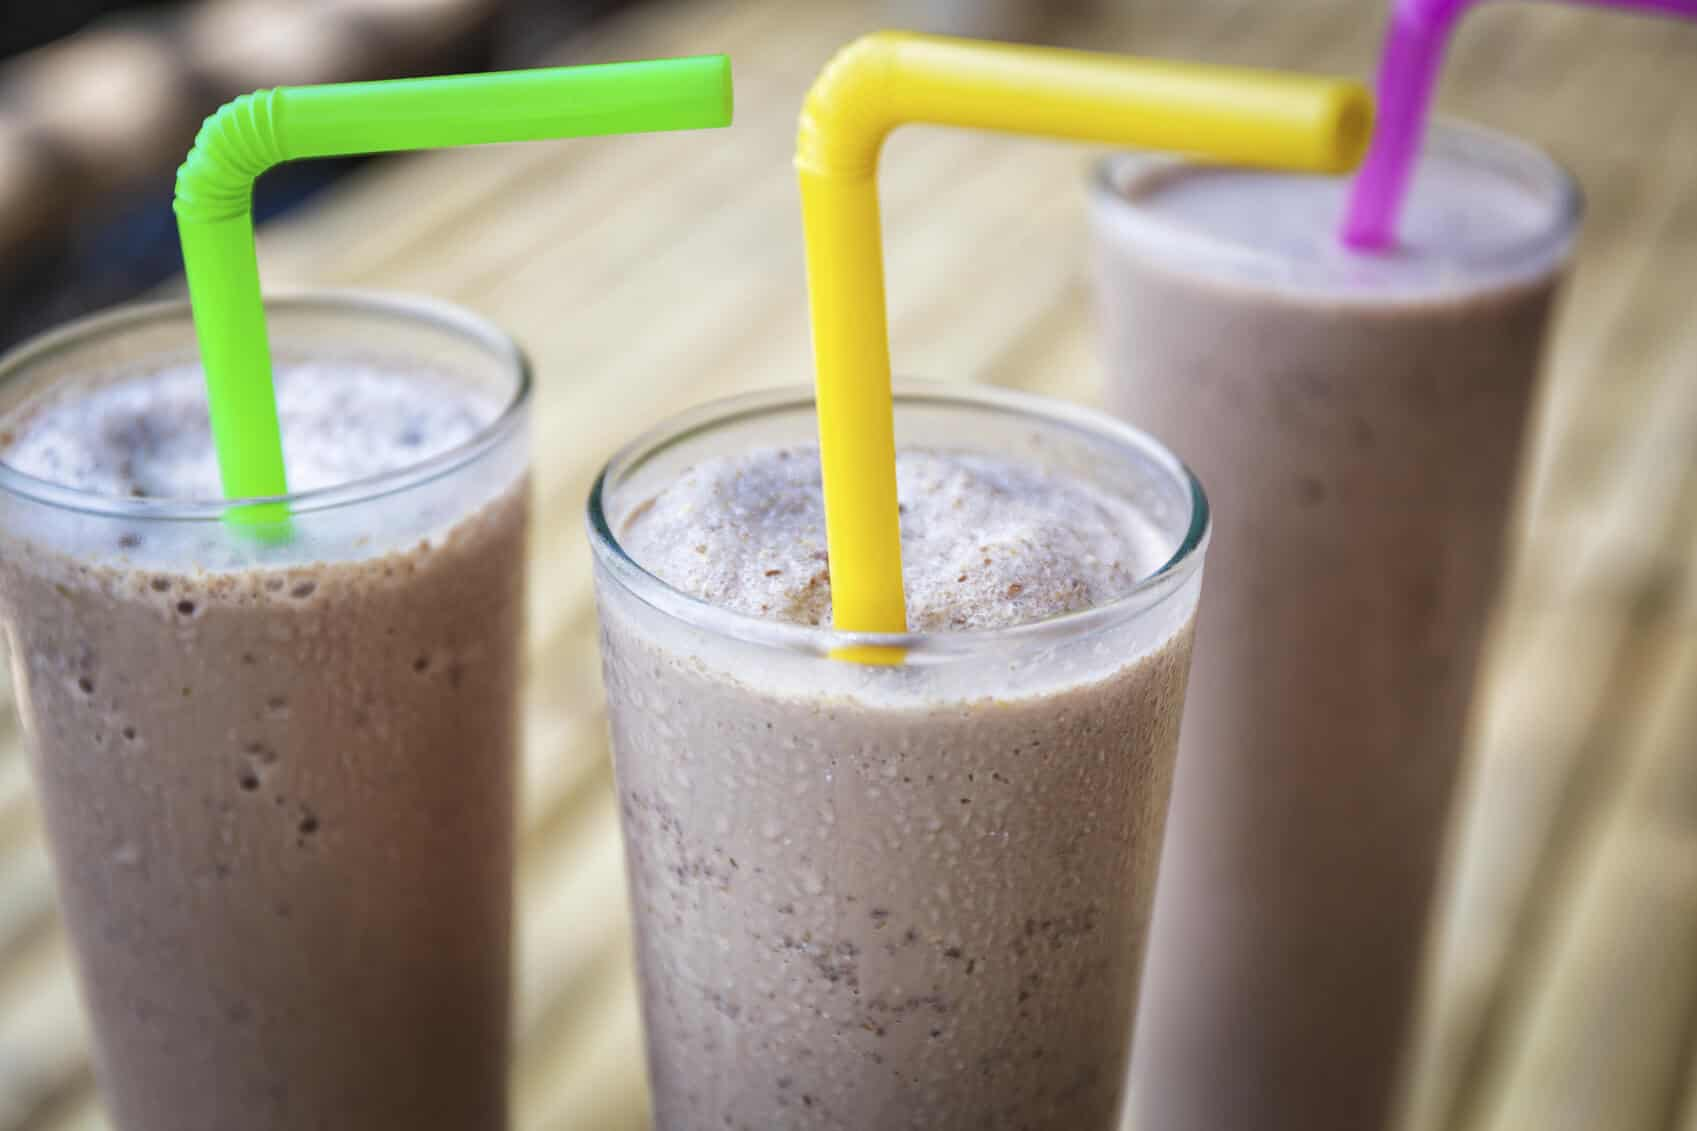 Drop Pounds and Belly Fat by Drinking Protein Shakes – Here's How! Ingredients